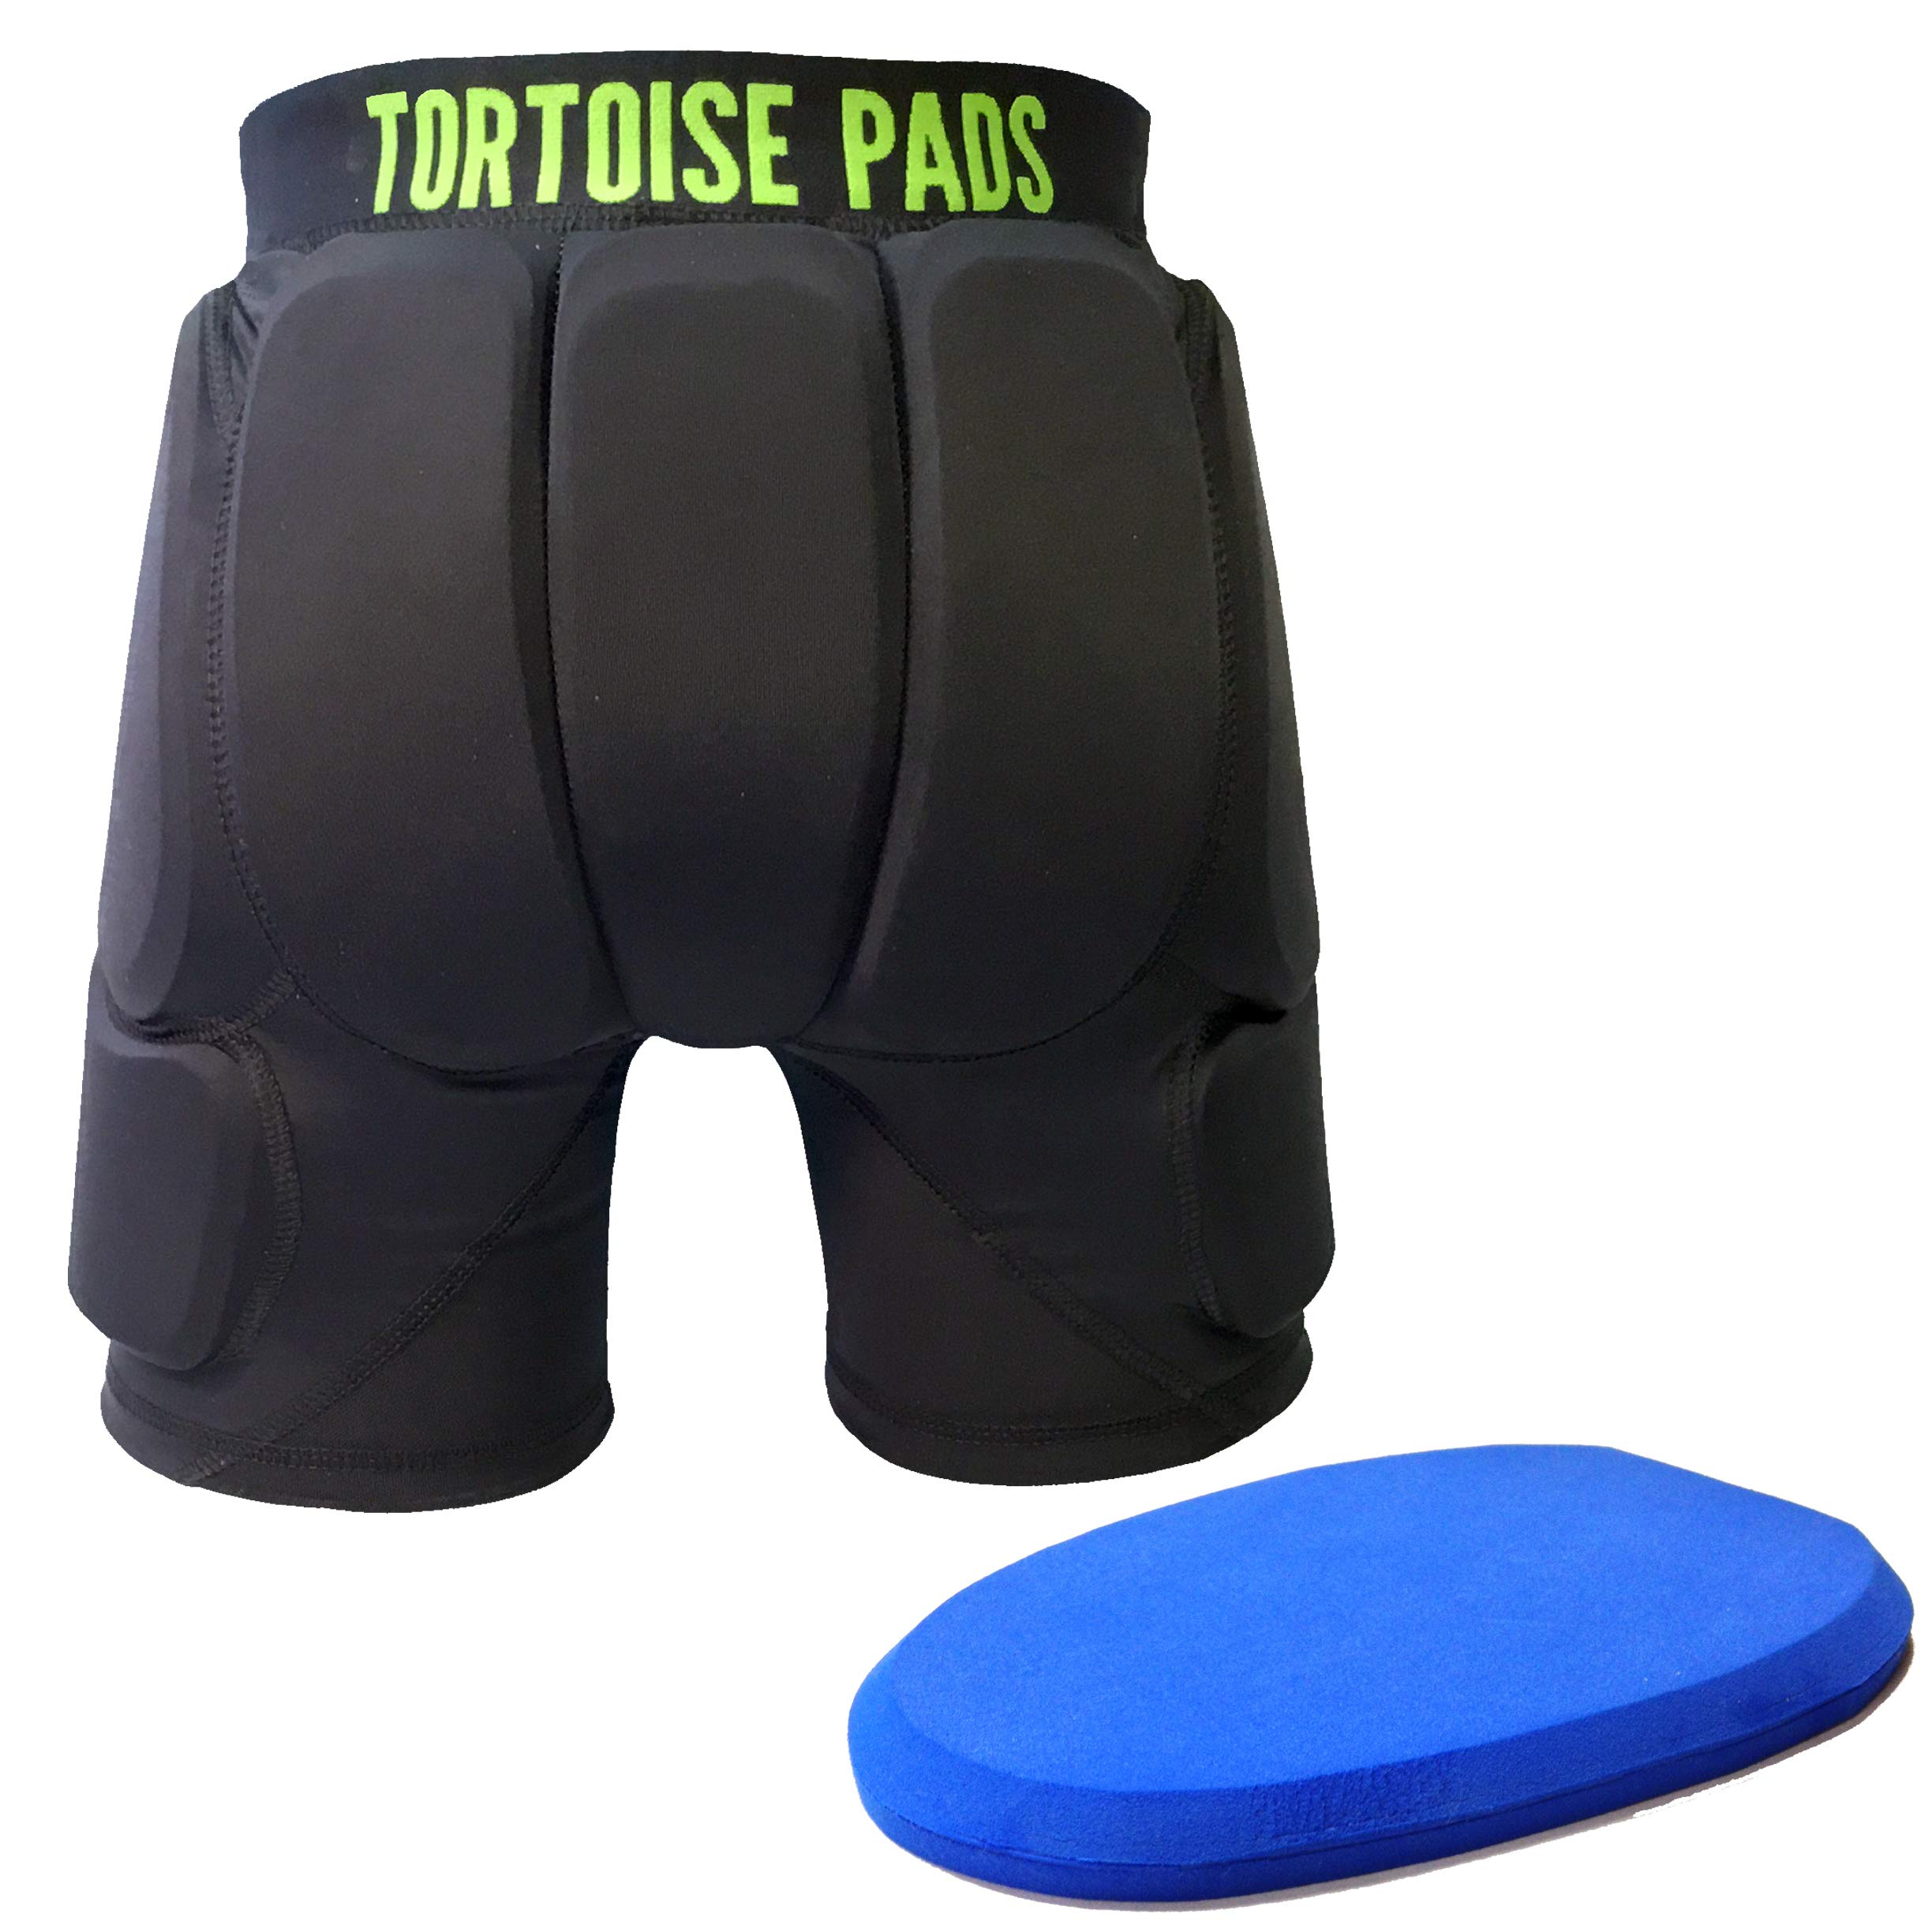 Tortoise Pads Single Density Impact Protection Padded Shorts (Youth Small)